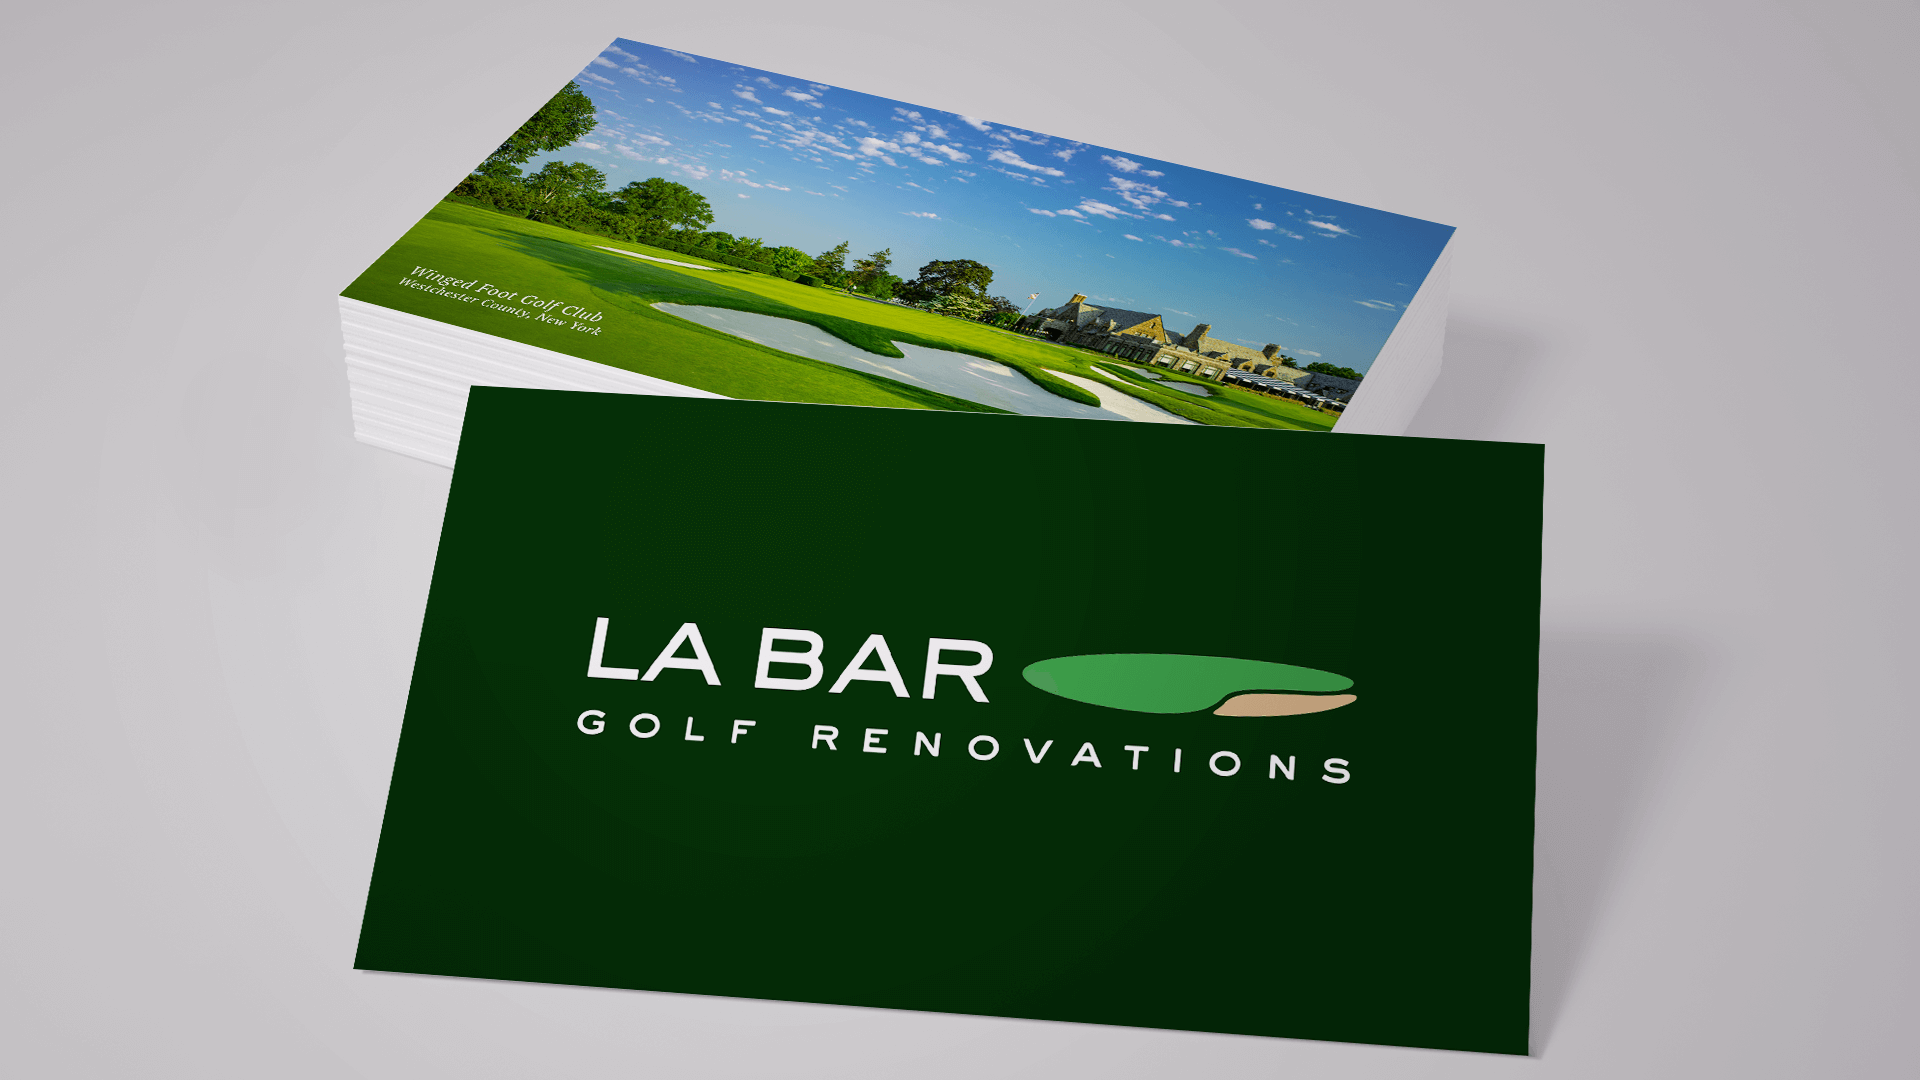 Labar Golf Renovations business cards branding